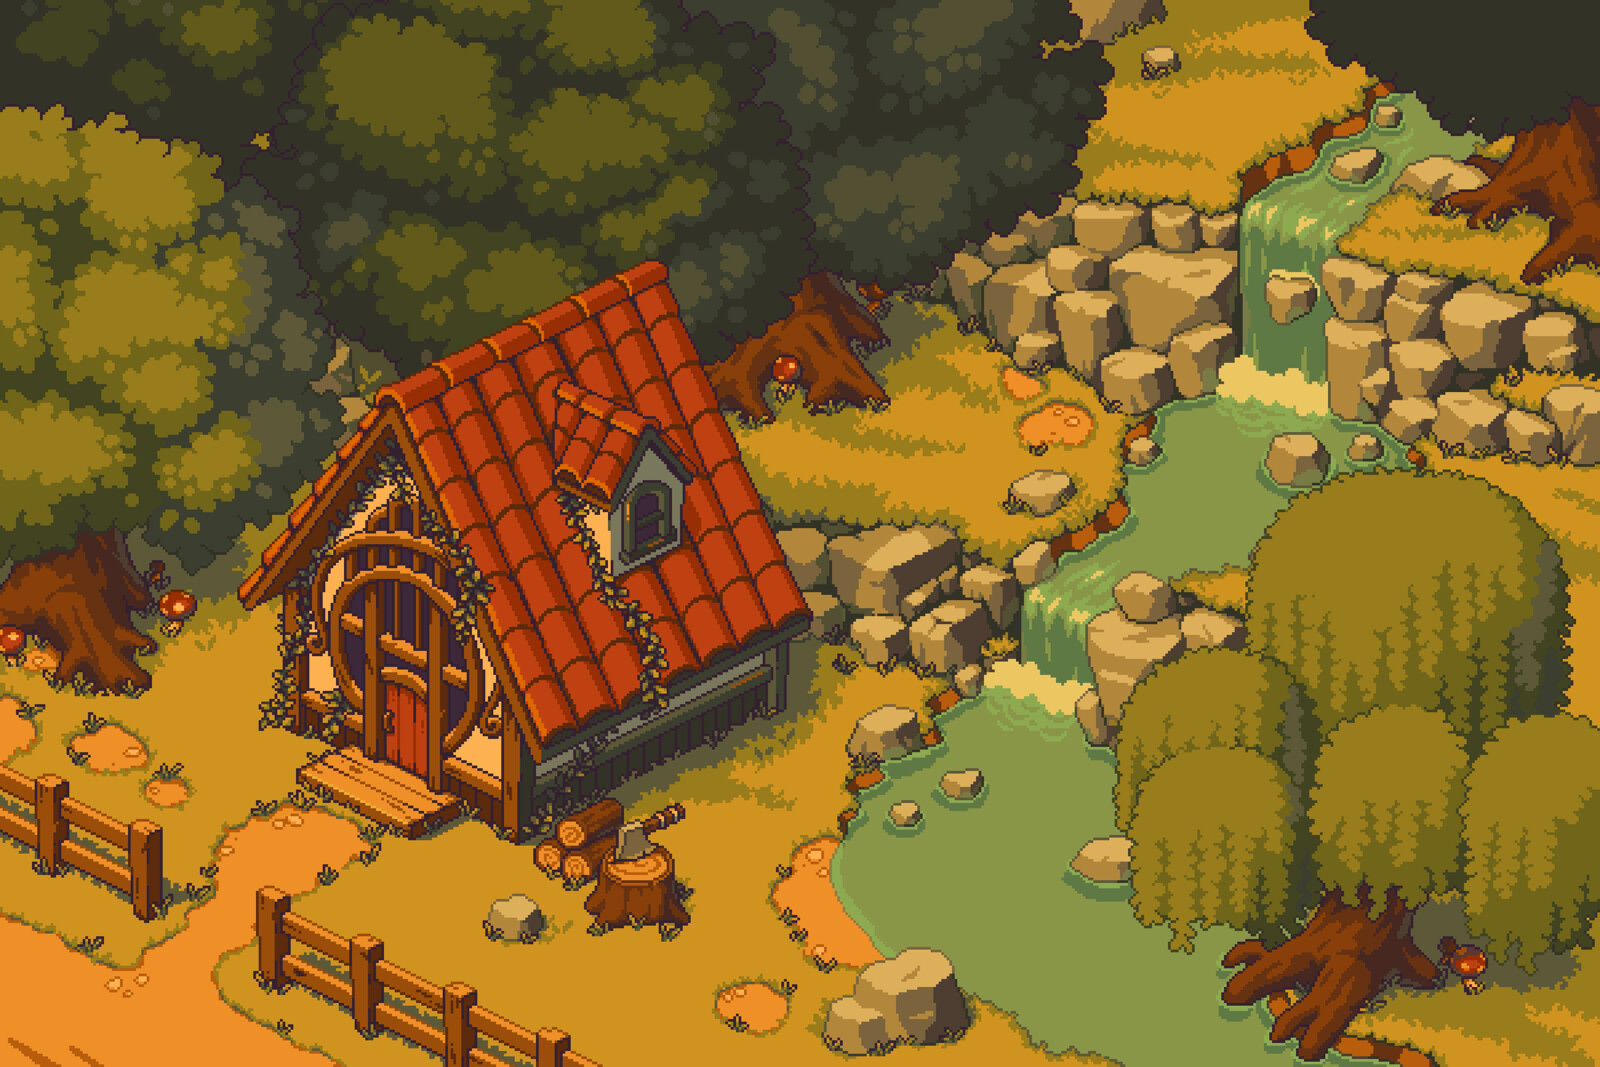 Pixel art cabin and forest scene